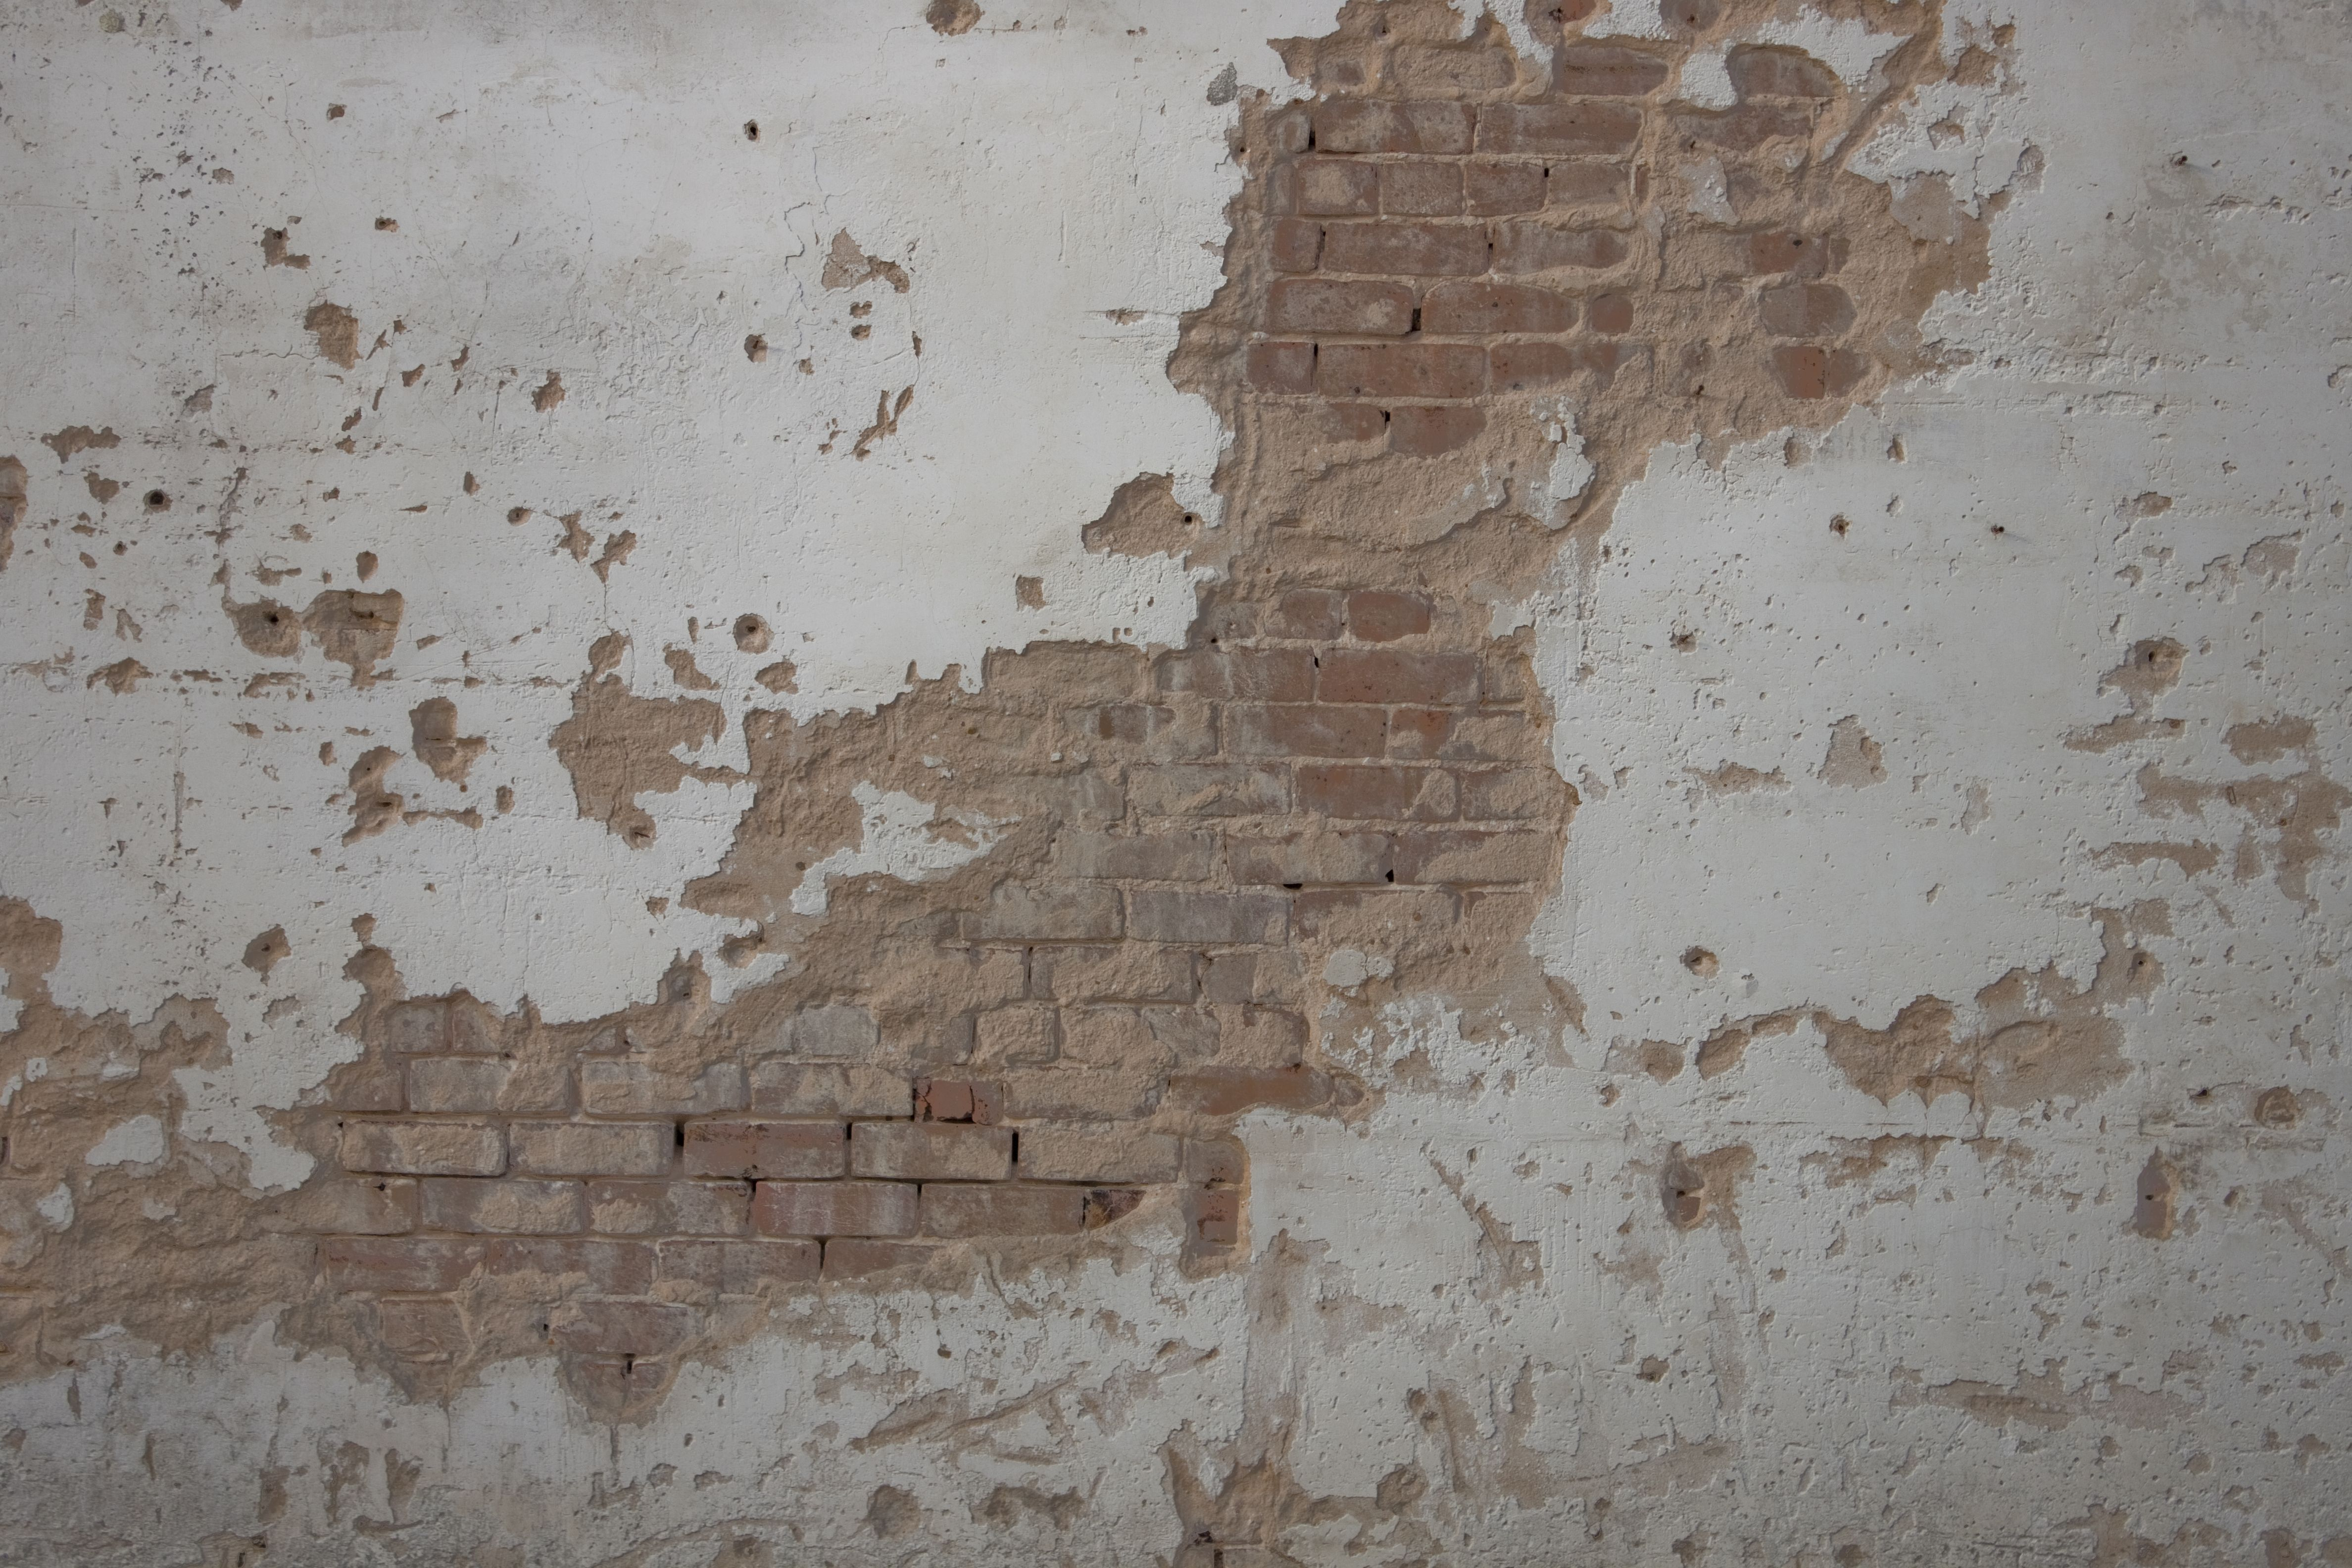 Pin By Cappaleigh Farm On Plaster Textures Pinterest Plaster Texture Bricks And Wall Textures